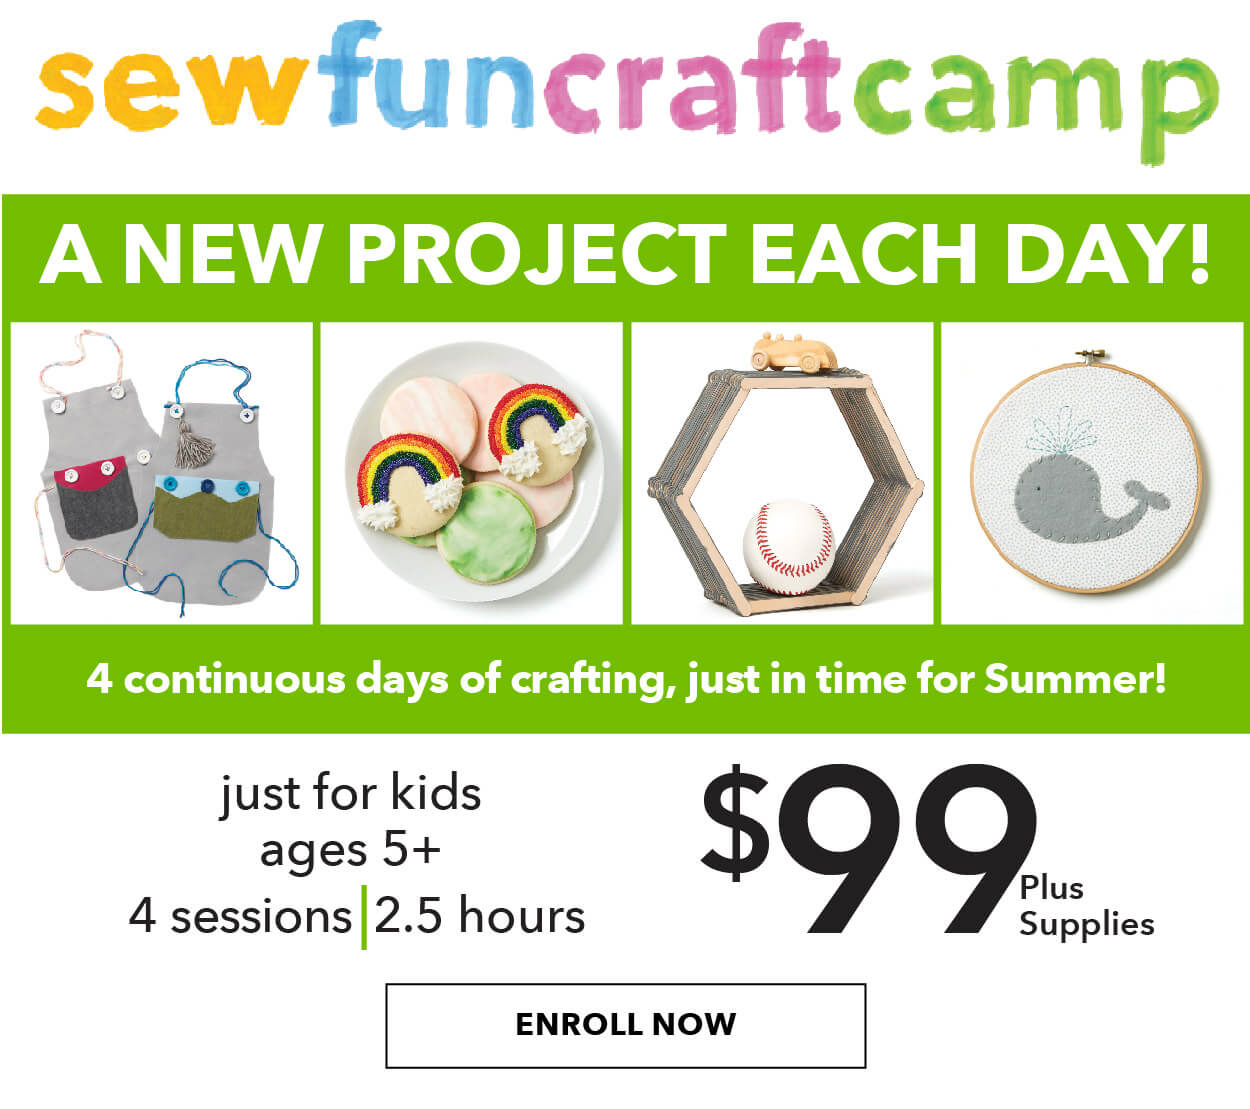 Kids Spring SewFunCraftCamp. A new project each day! 4 continuous days of crafting. just in time for summer! Just for kids ages 5+. 4 sessions. 2.5 hours. $99 plus supplies. ENROLL NOW.